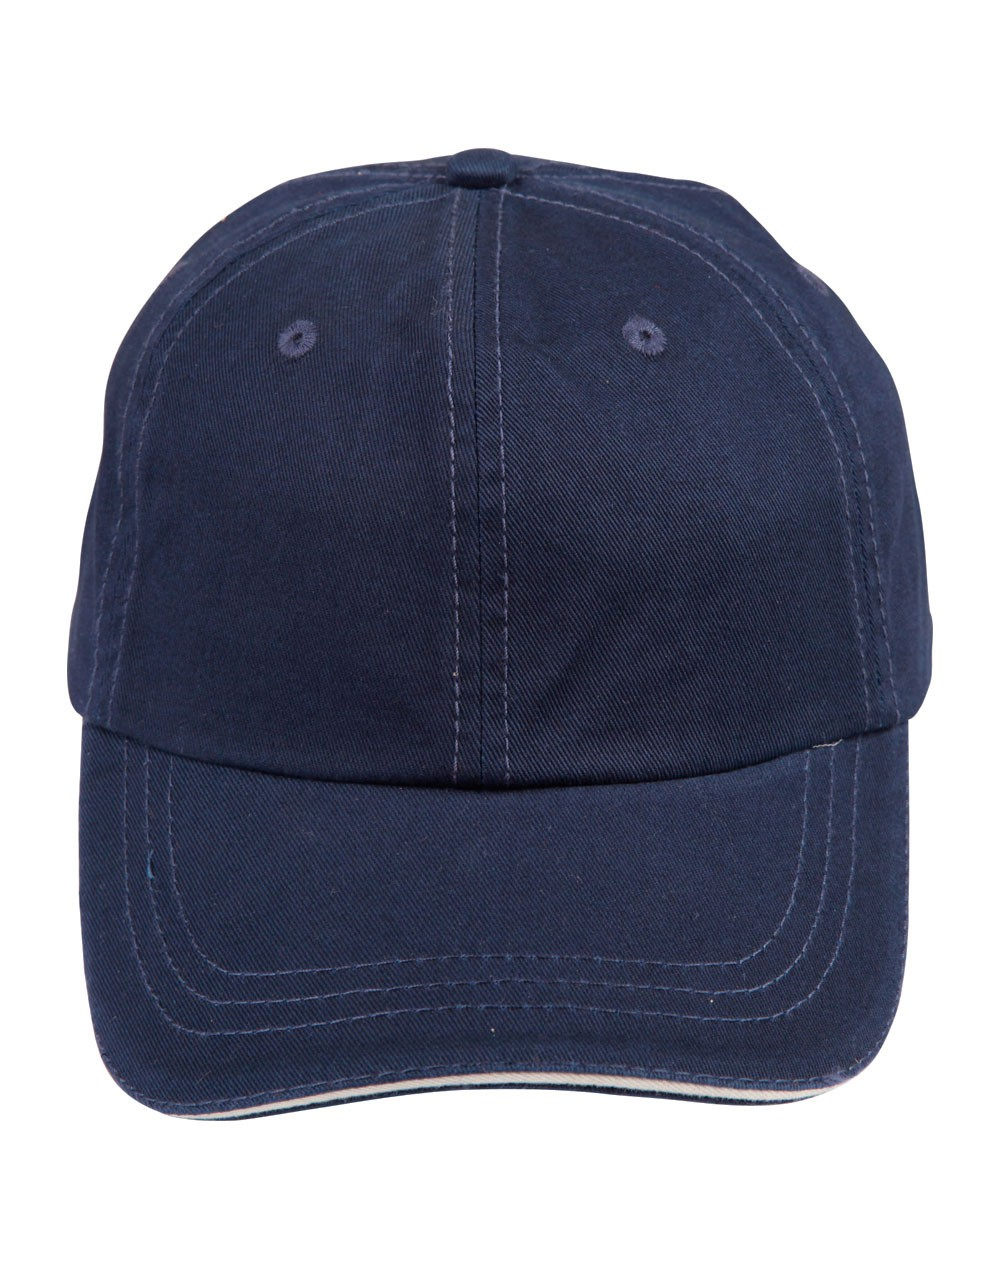 d0ecfa877 Buy Winning Spirit Washed Unstructured Polo Cotton With Sandwich Cap